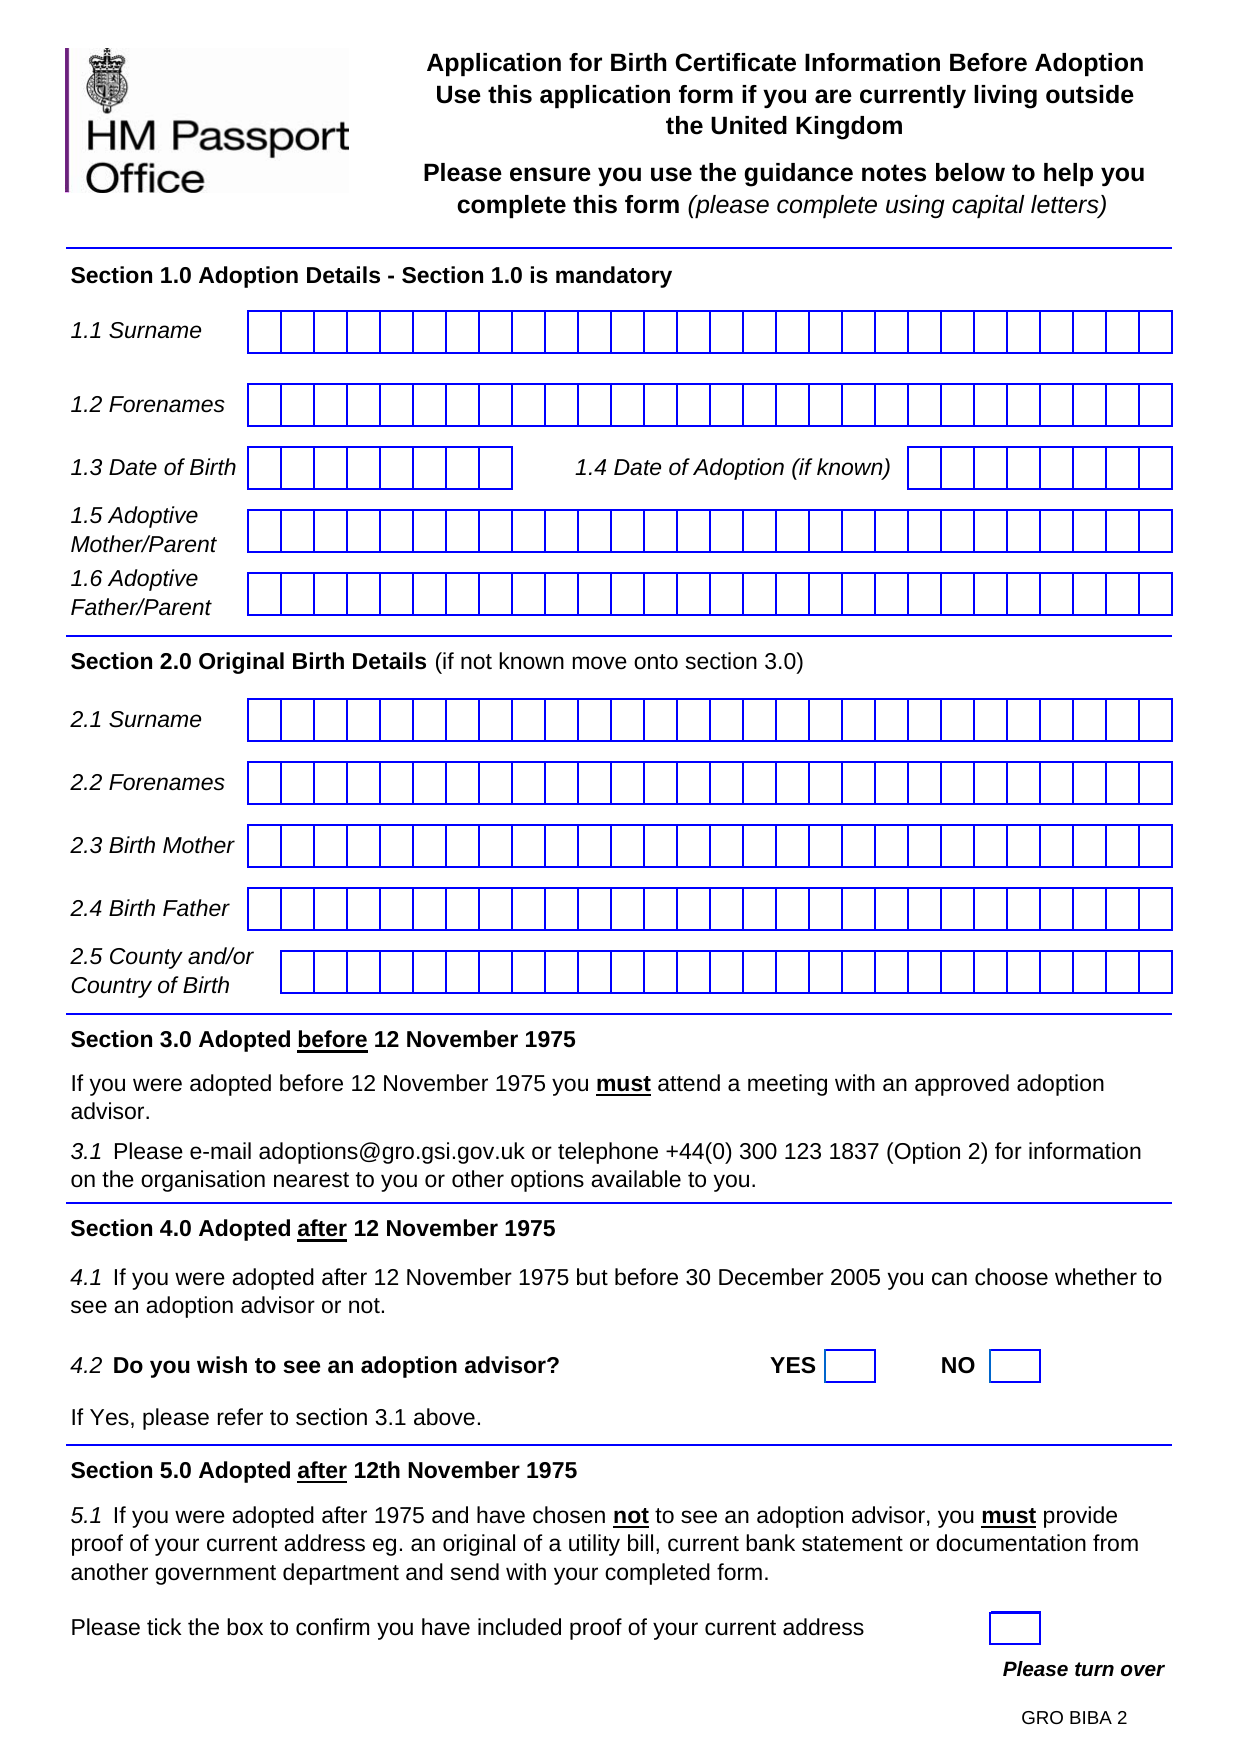 Form explorer attachment application form to get birth certificate information outside the uk aiddatafo Gallery